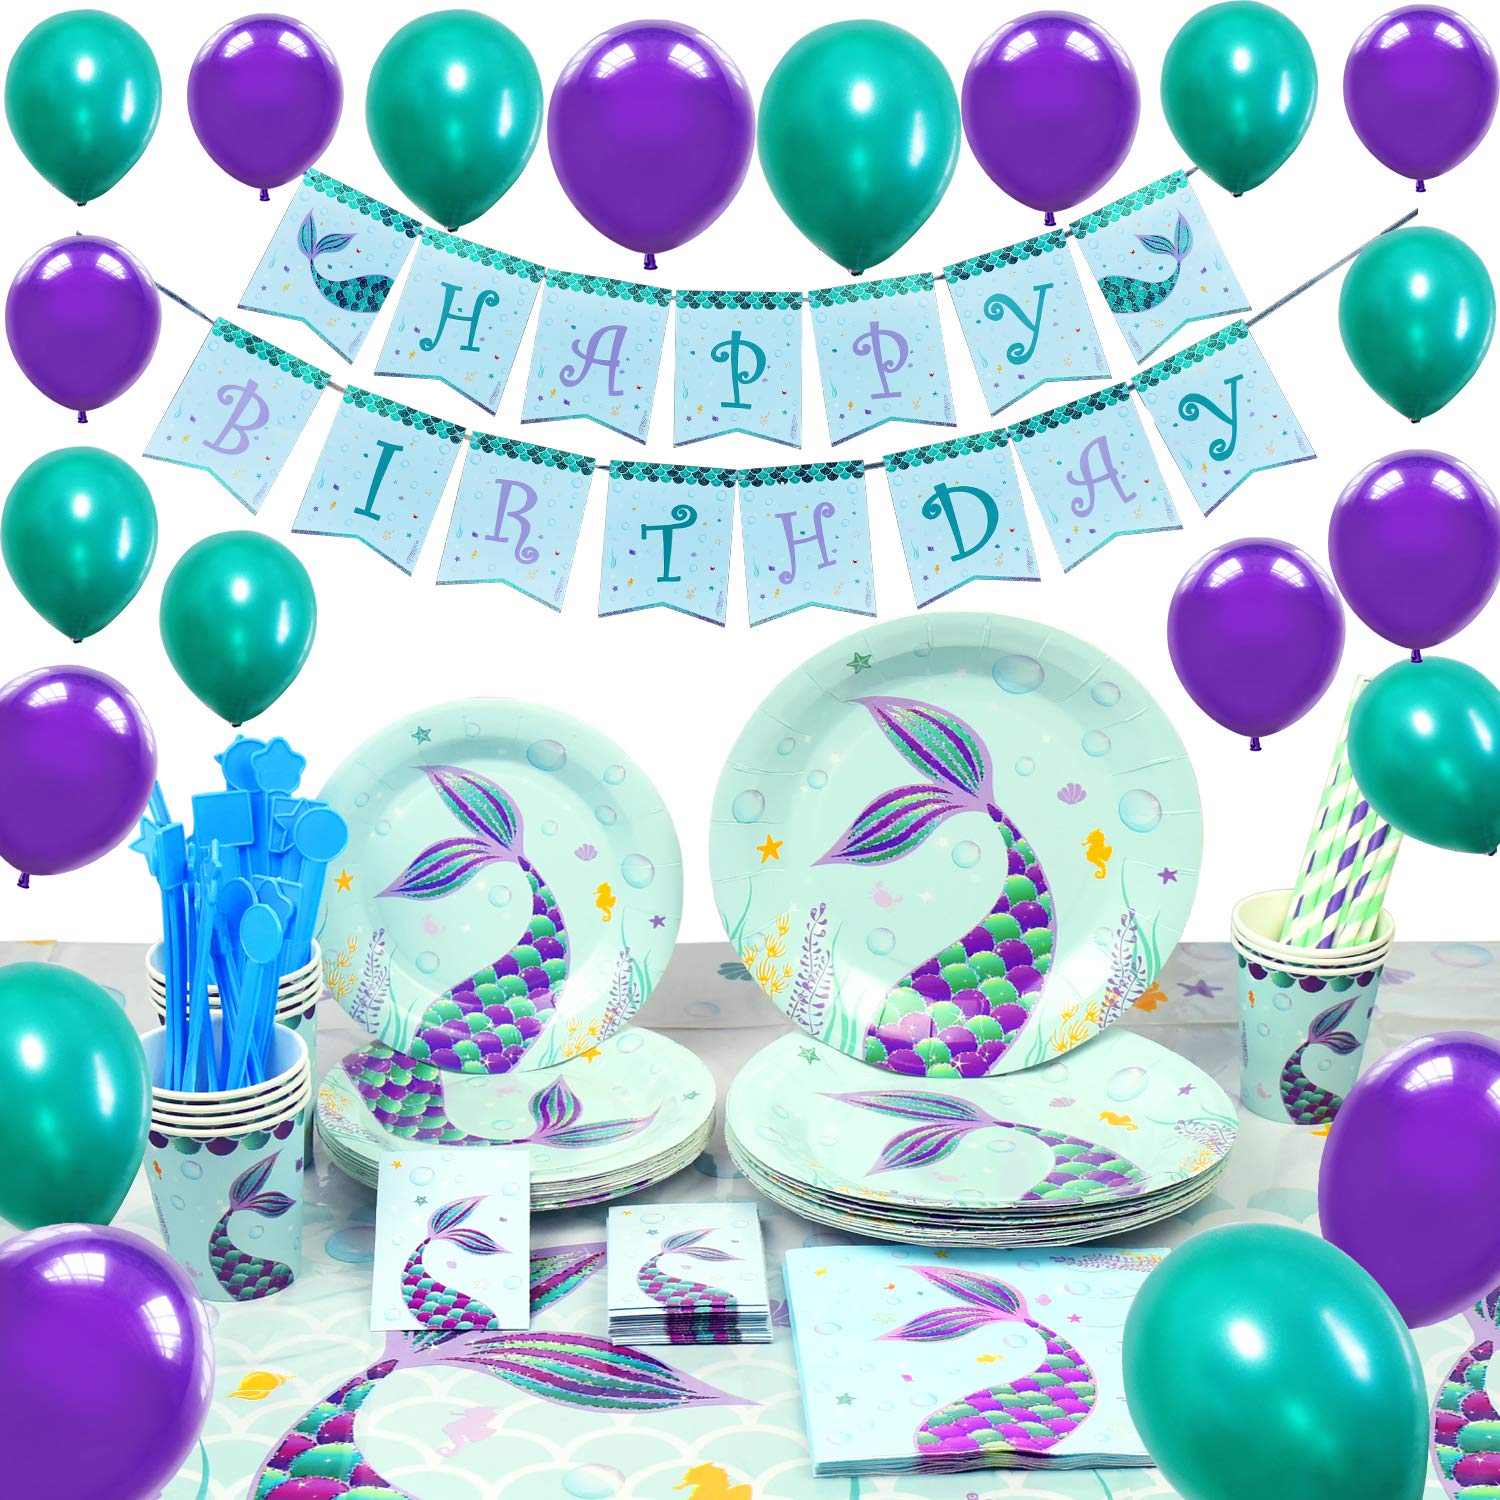 WERNNSAI Pool Mermaid Party Supplies Kit - Party Favors Girls Birthday Party Decoration Cutlery Bag Table Cover Plates Cups Napkins Straws Utensils Birthday Banner & Balloons Serves 16 Guests 169 PCS by WERNNSAI